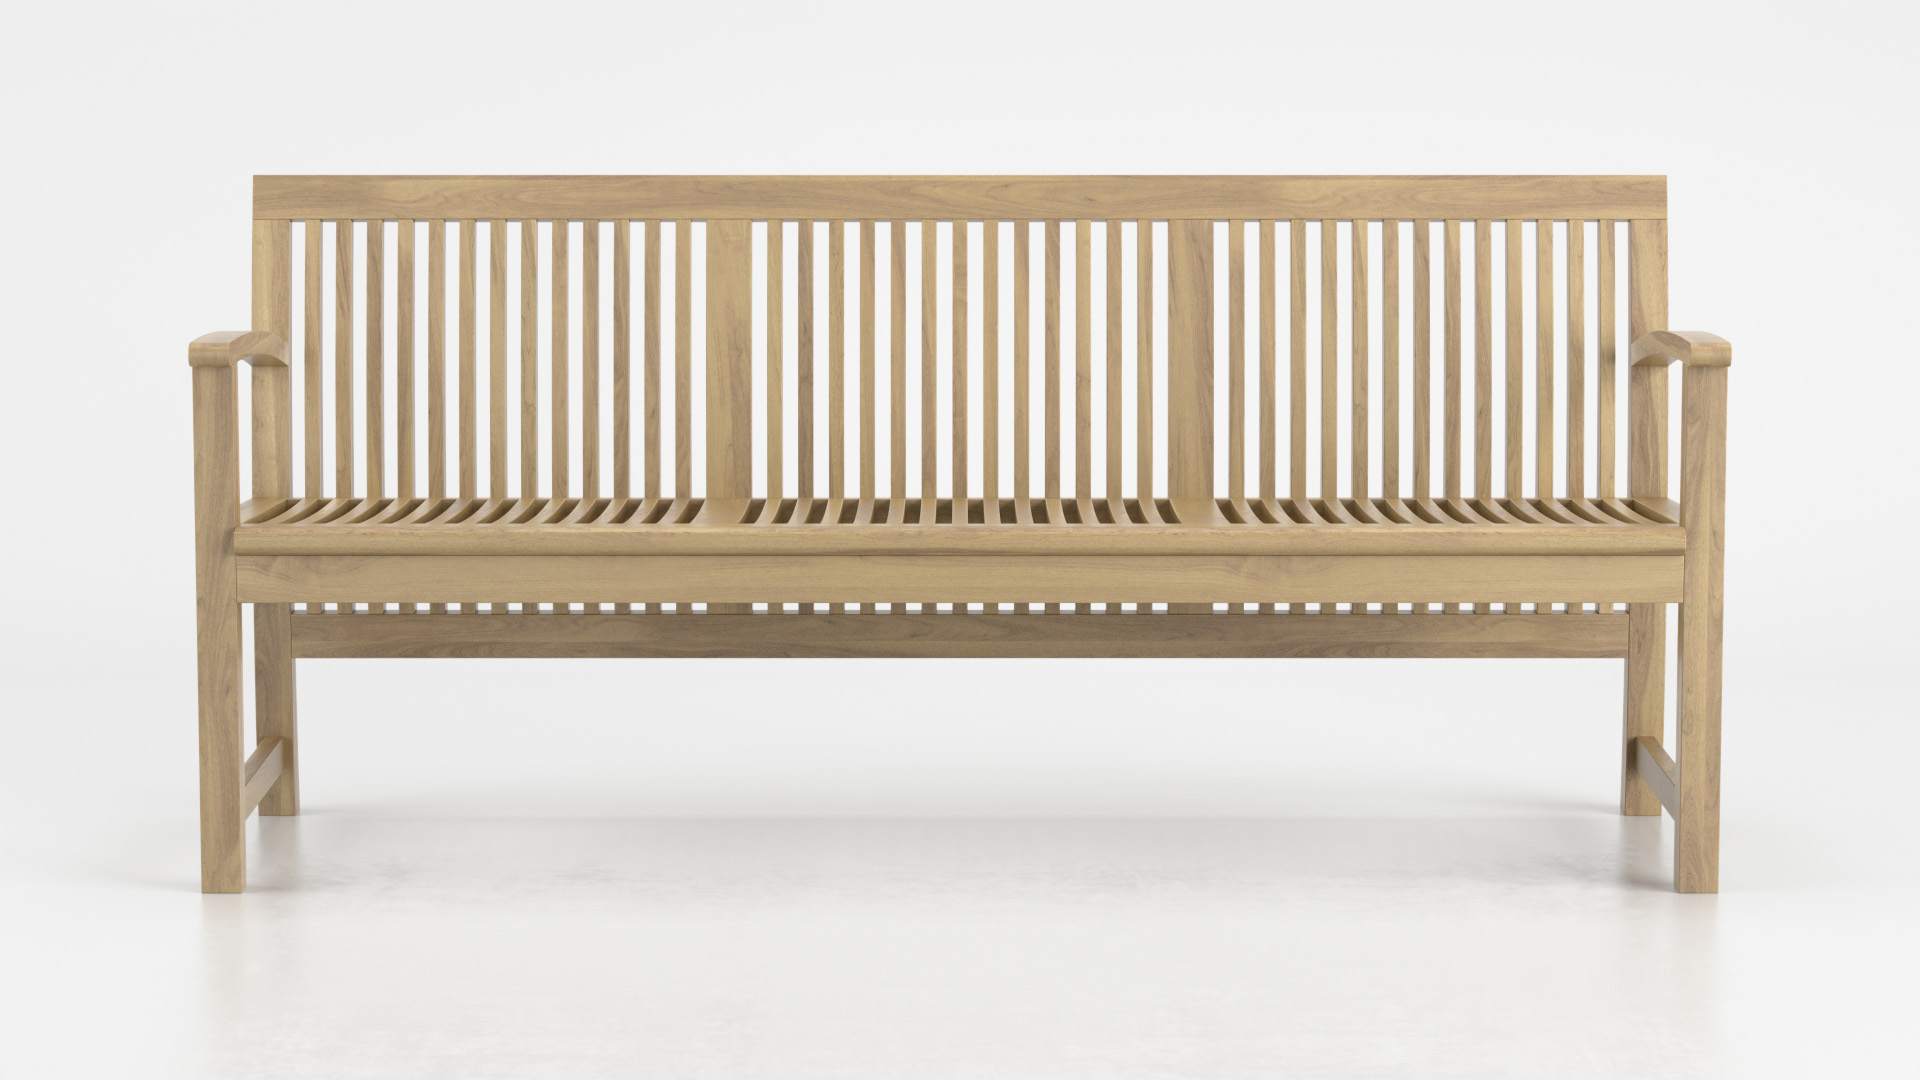 Tribu_Praslin_Bench_WhiteSet_01_0001